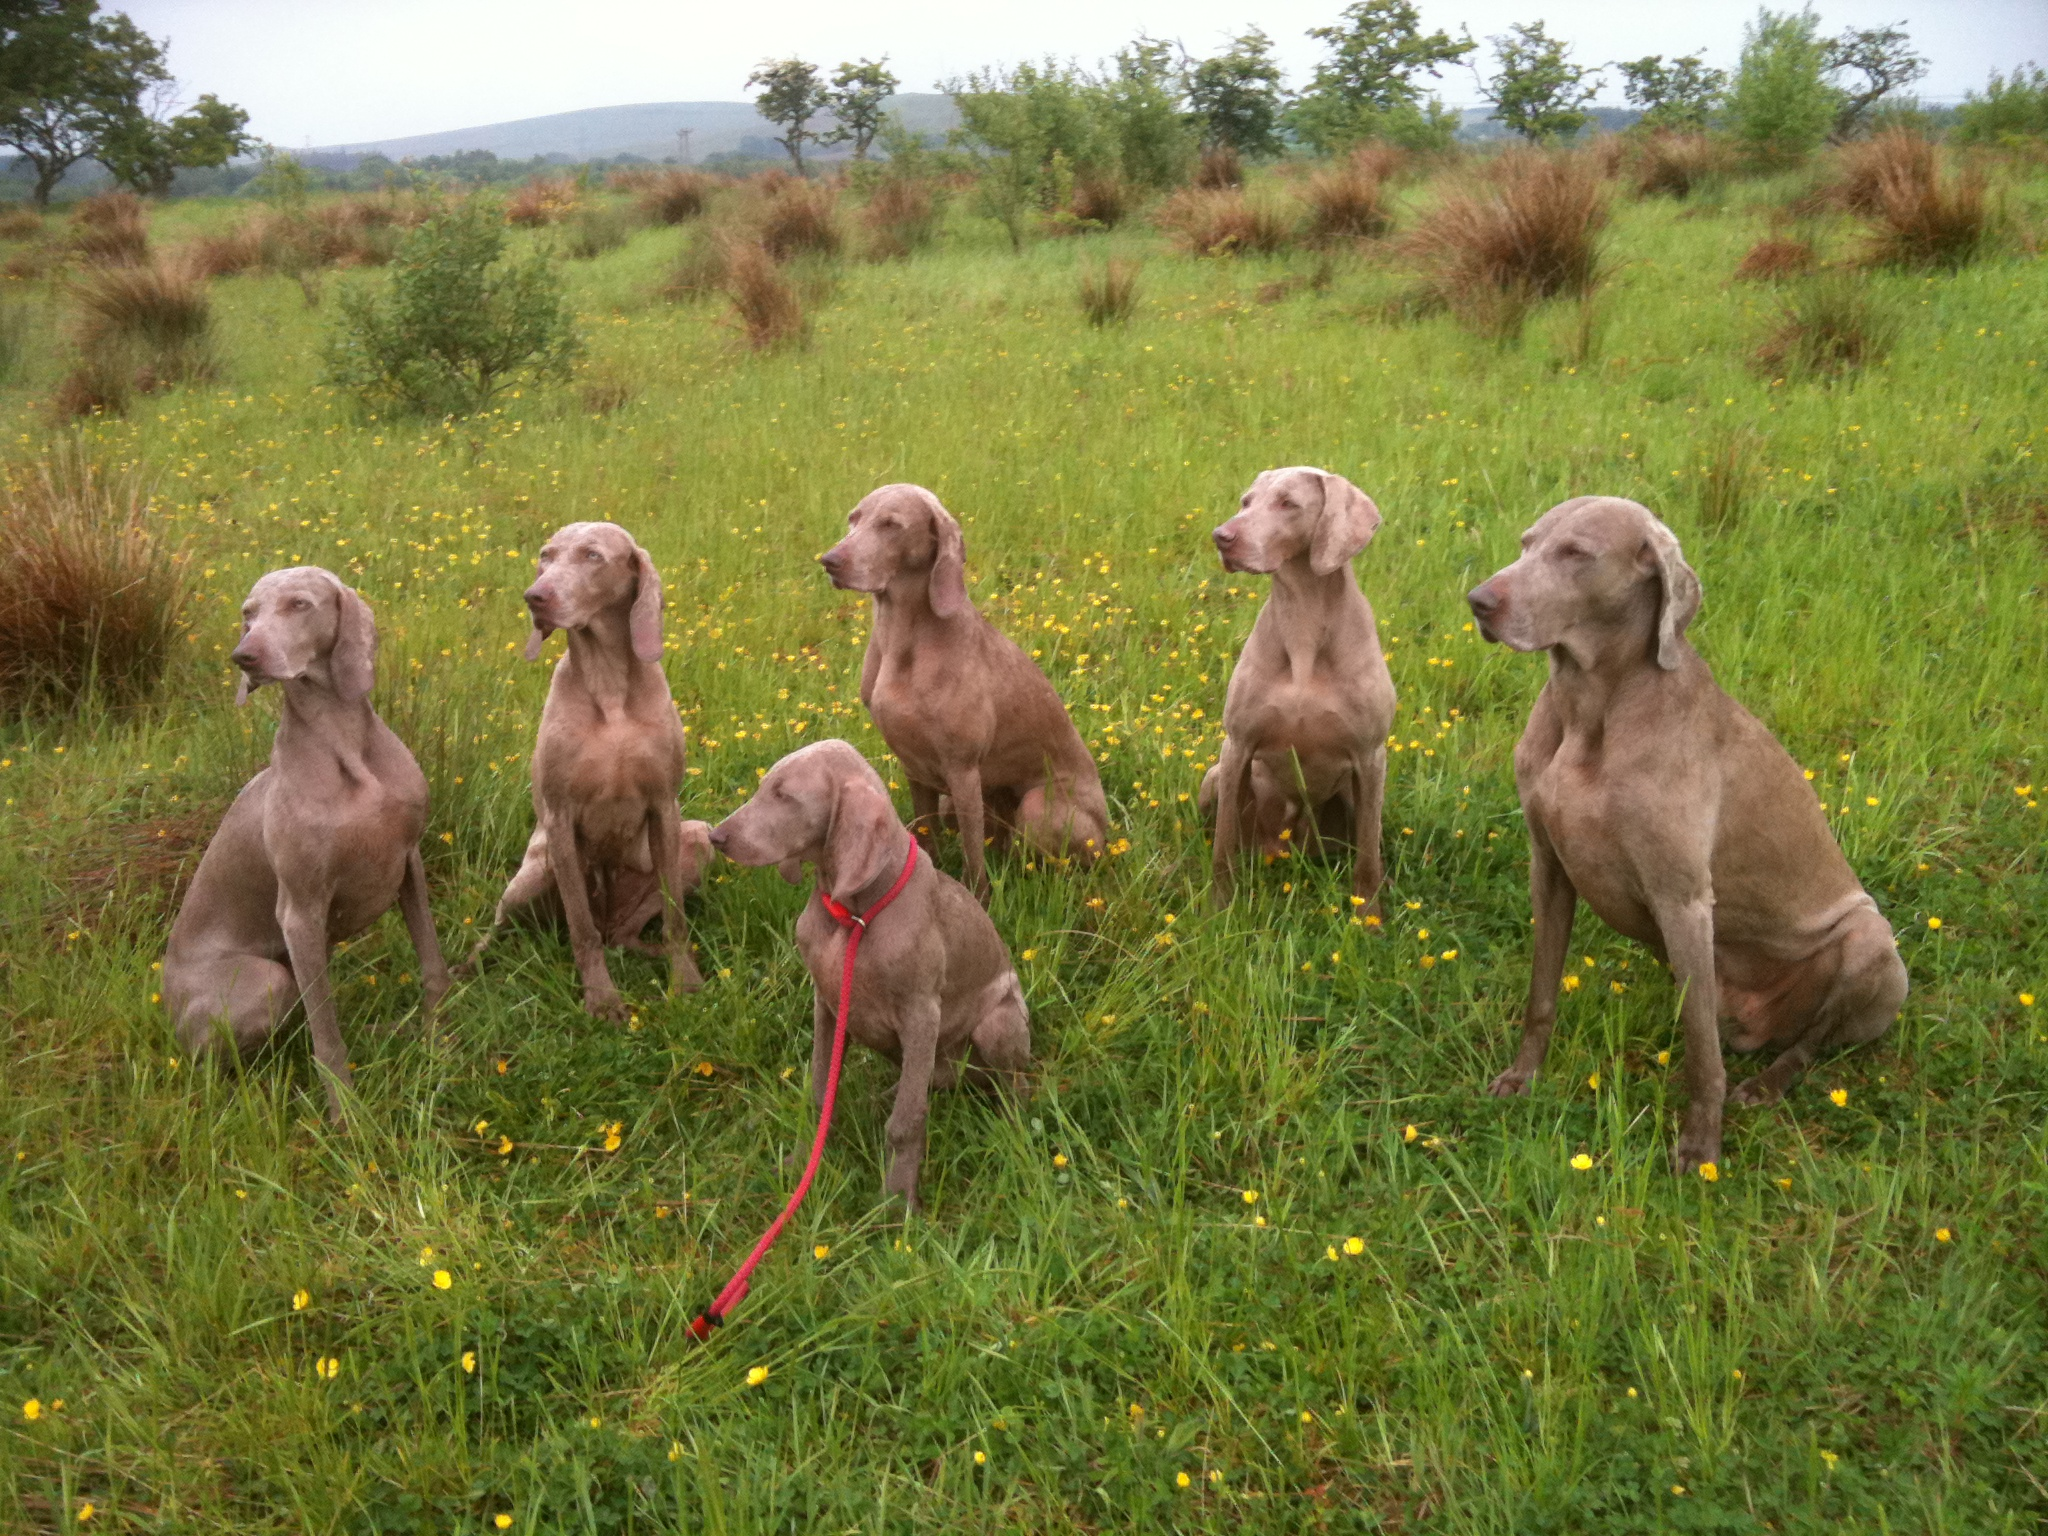 Weimaraner dogs photo and wallpaper. Beautiful Weimaraner dogs ...